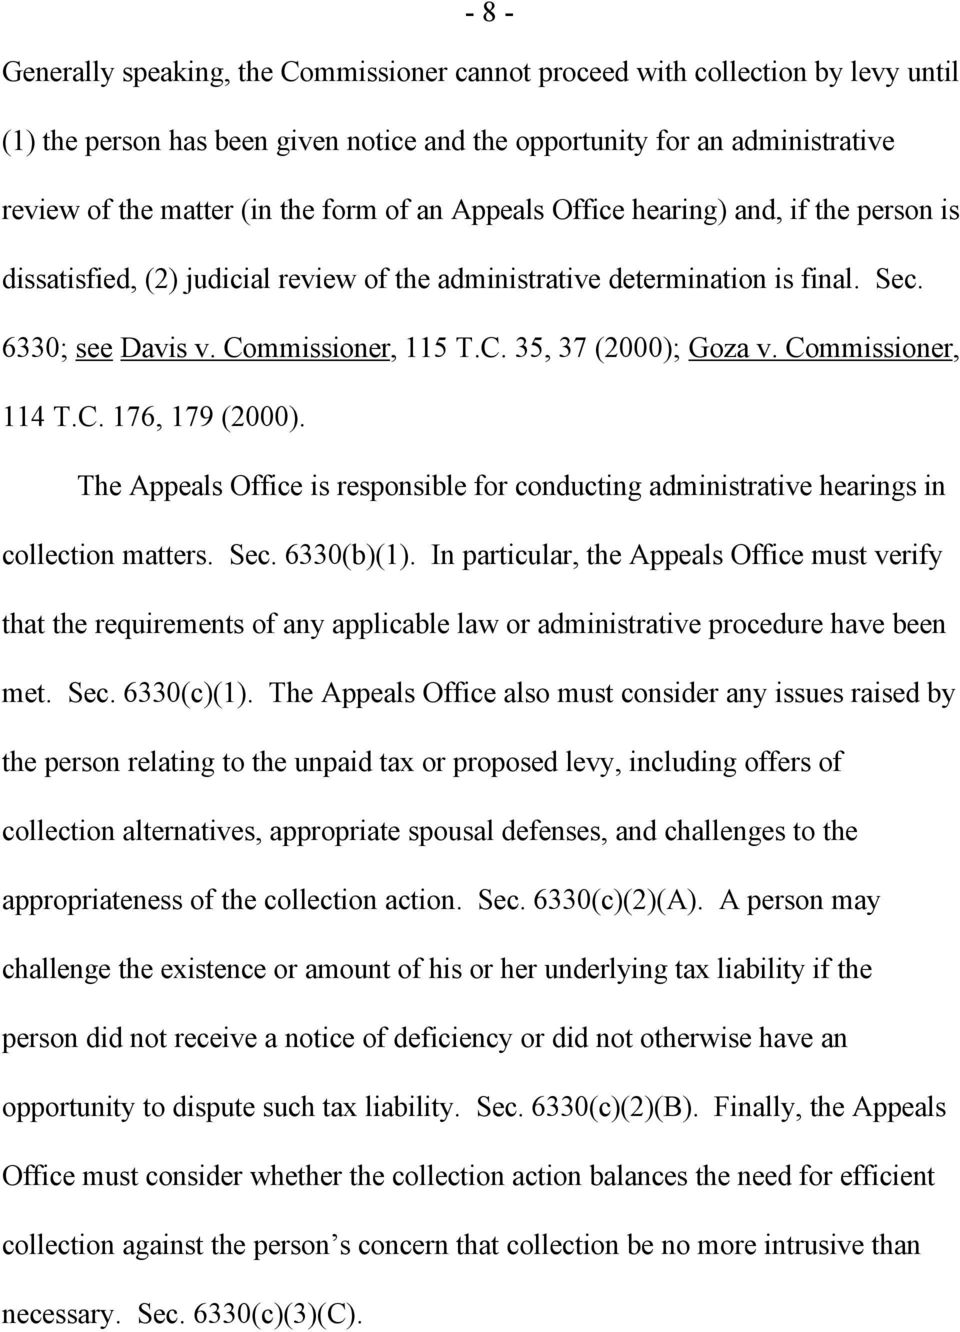 Commissioner, 114 T.C. 176, 179 (2000). The Appeals Office is responsible for conducting administrative hearings in collection matters. Sec. 6330(b)(1).